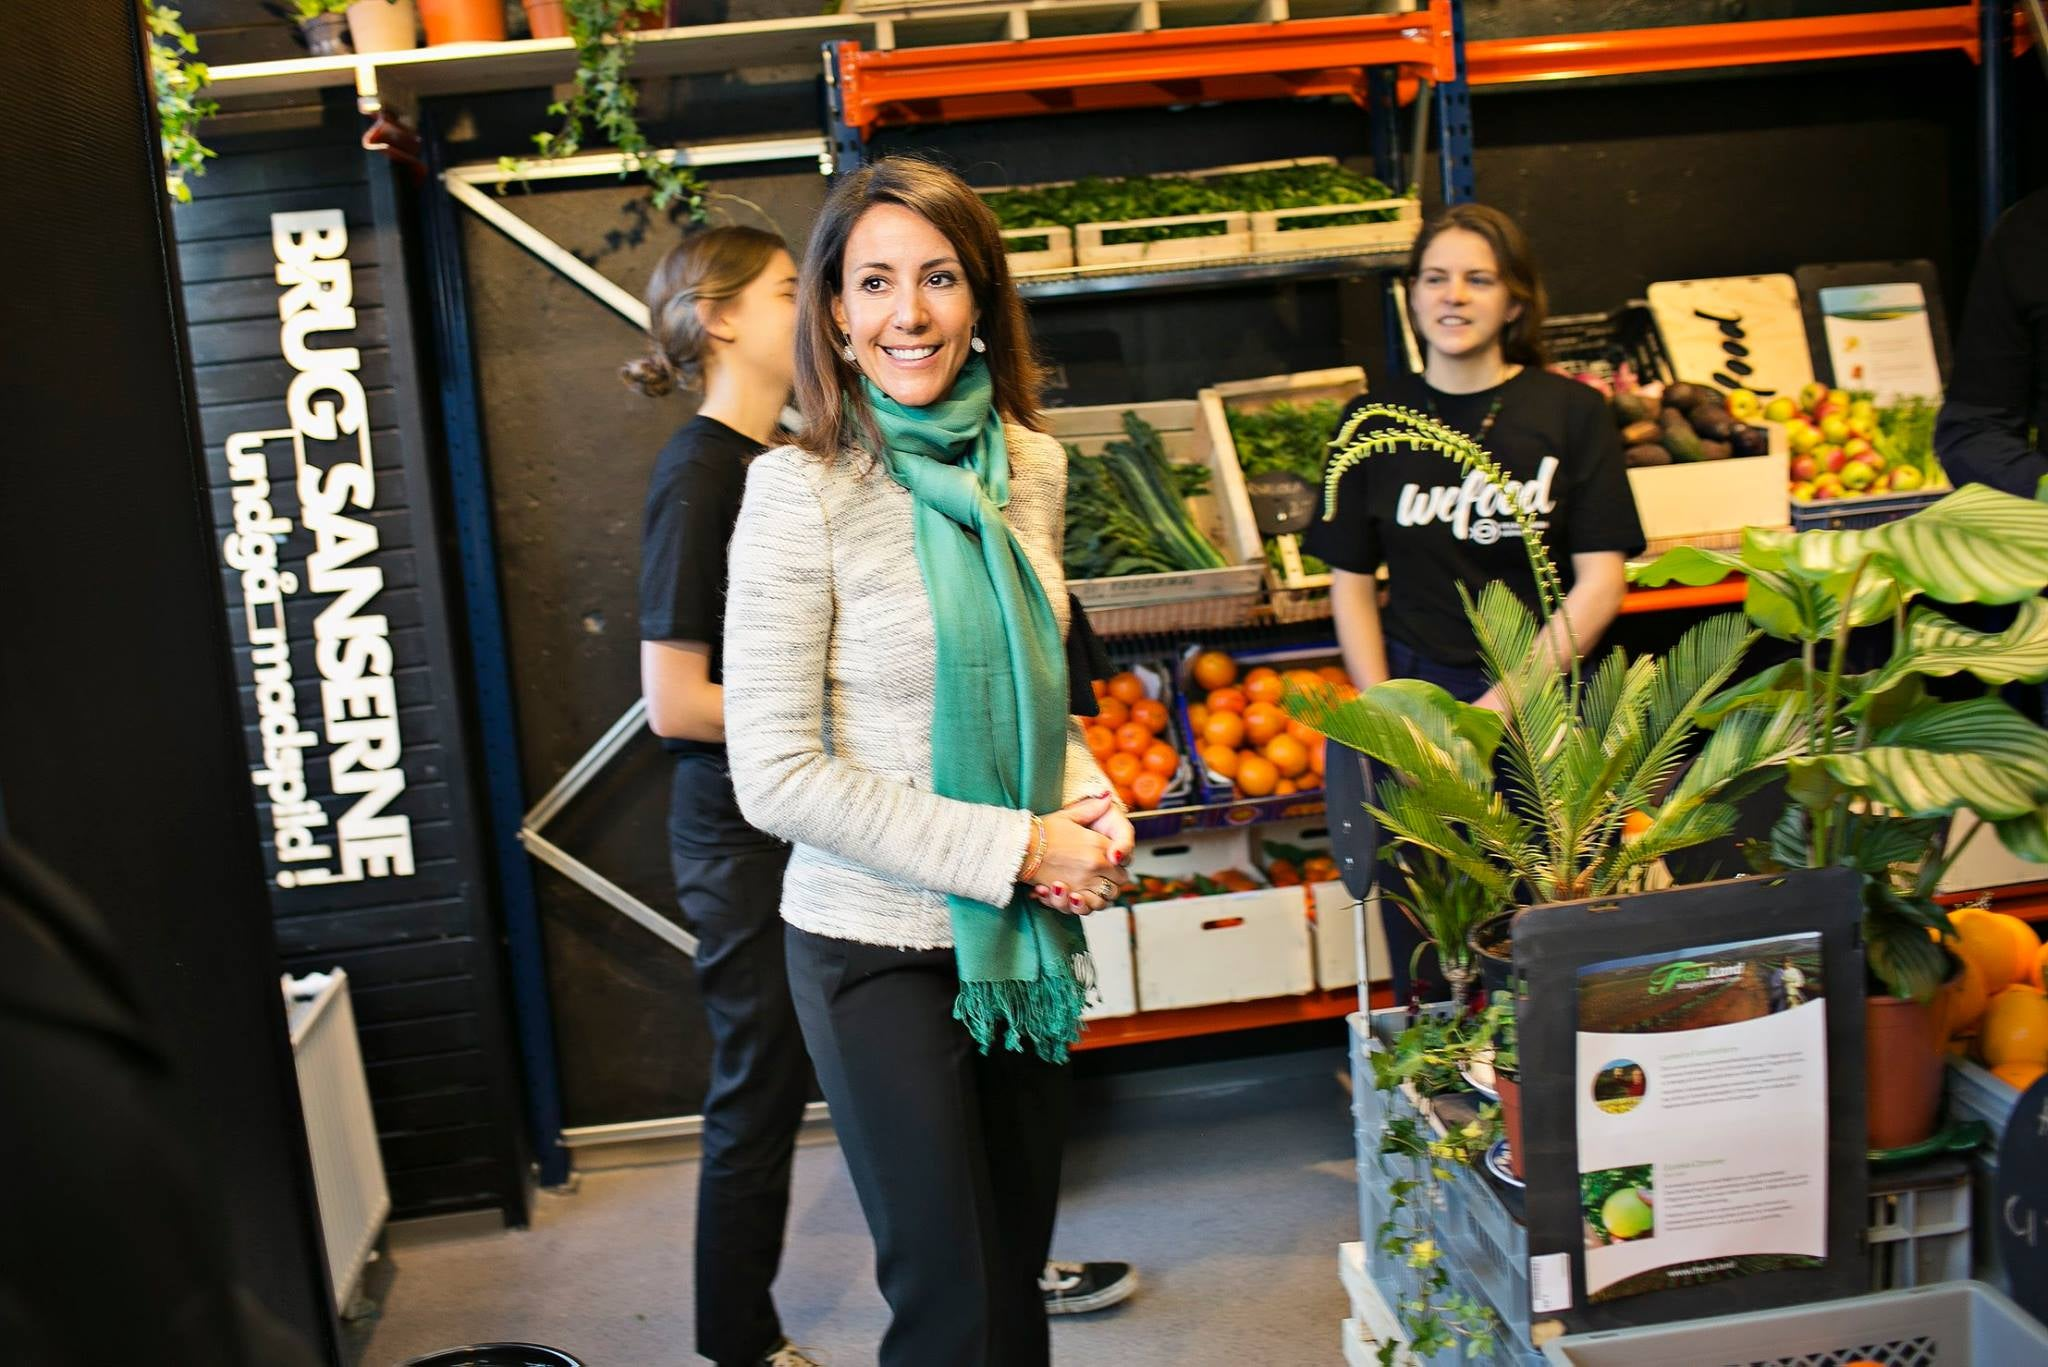 The world's first food waste supermarket has opened